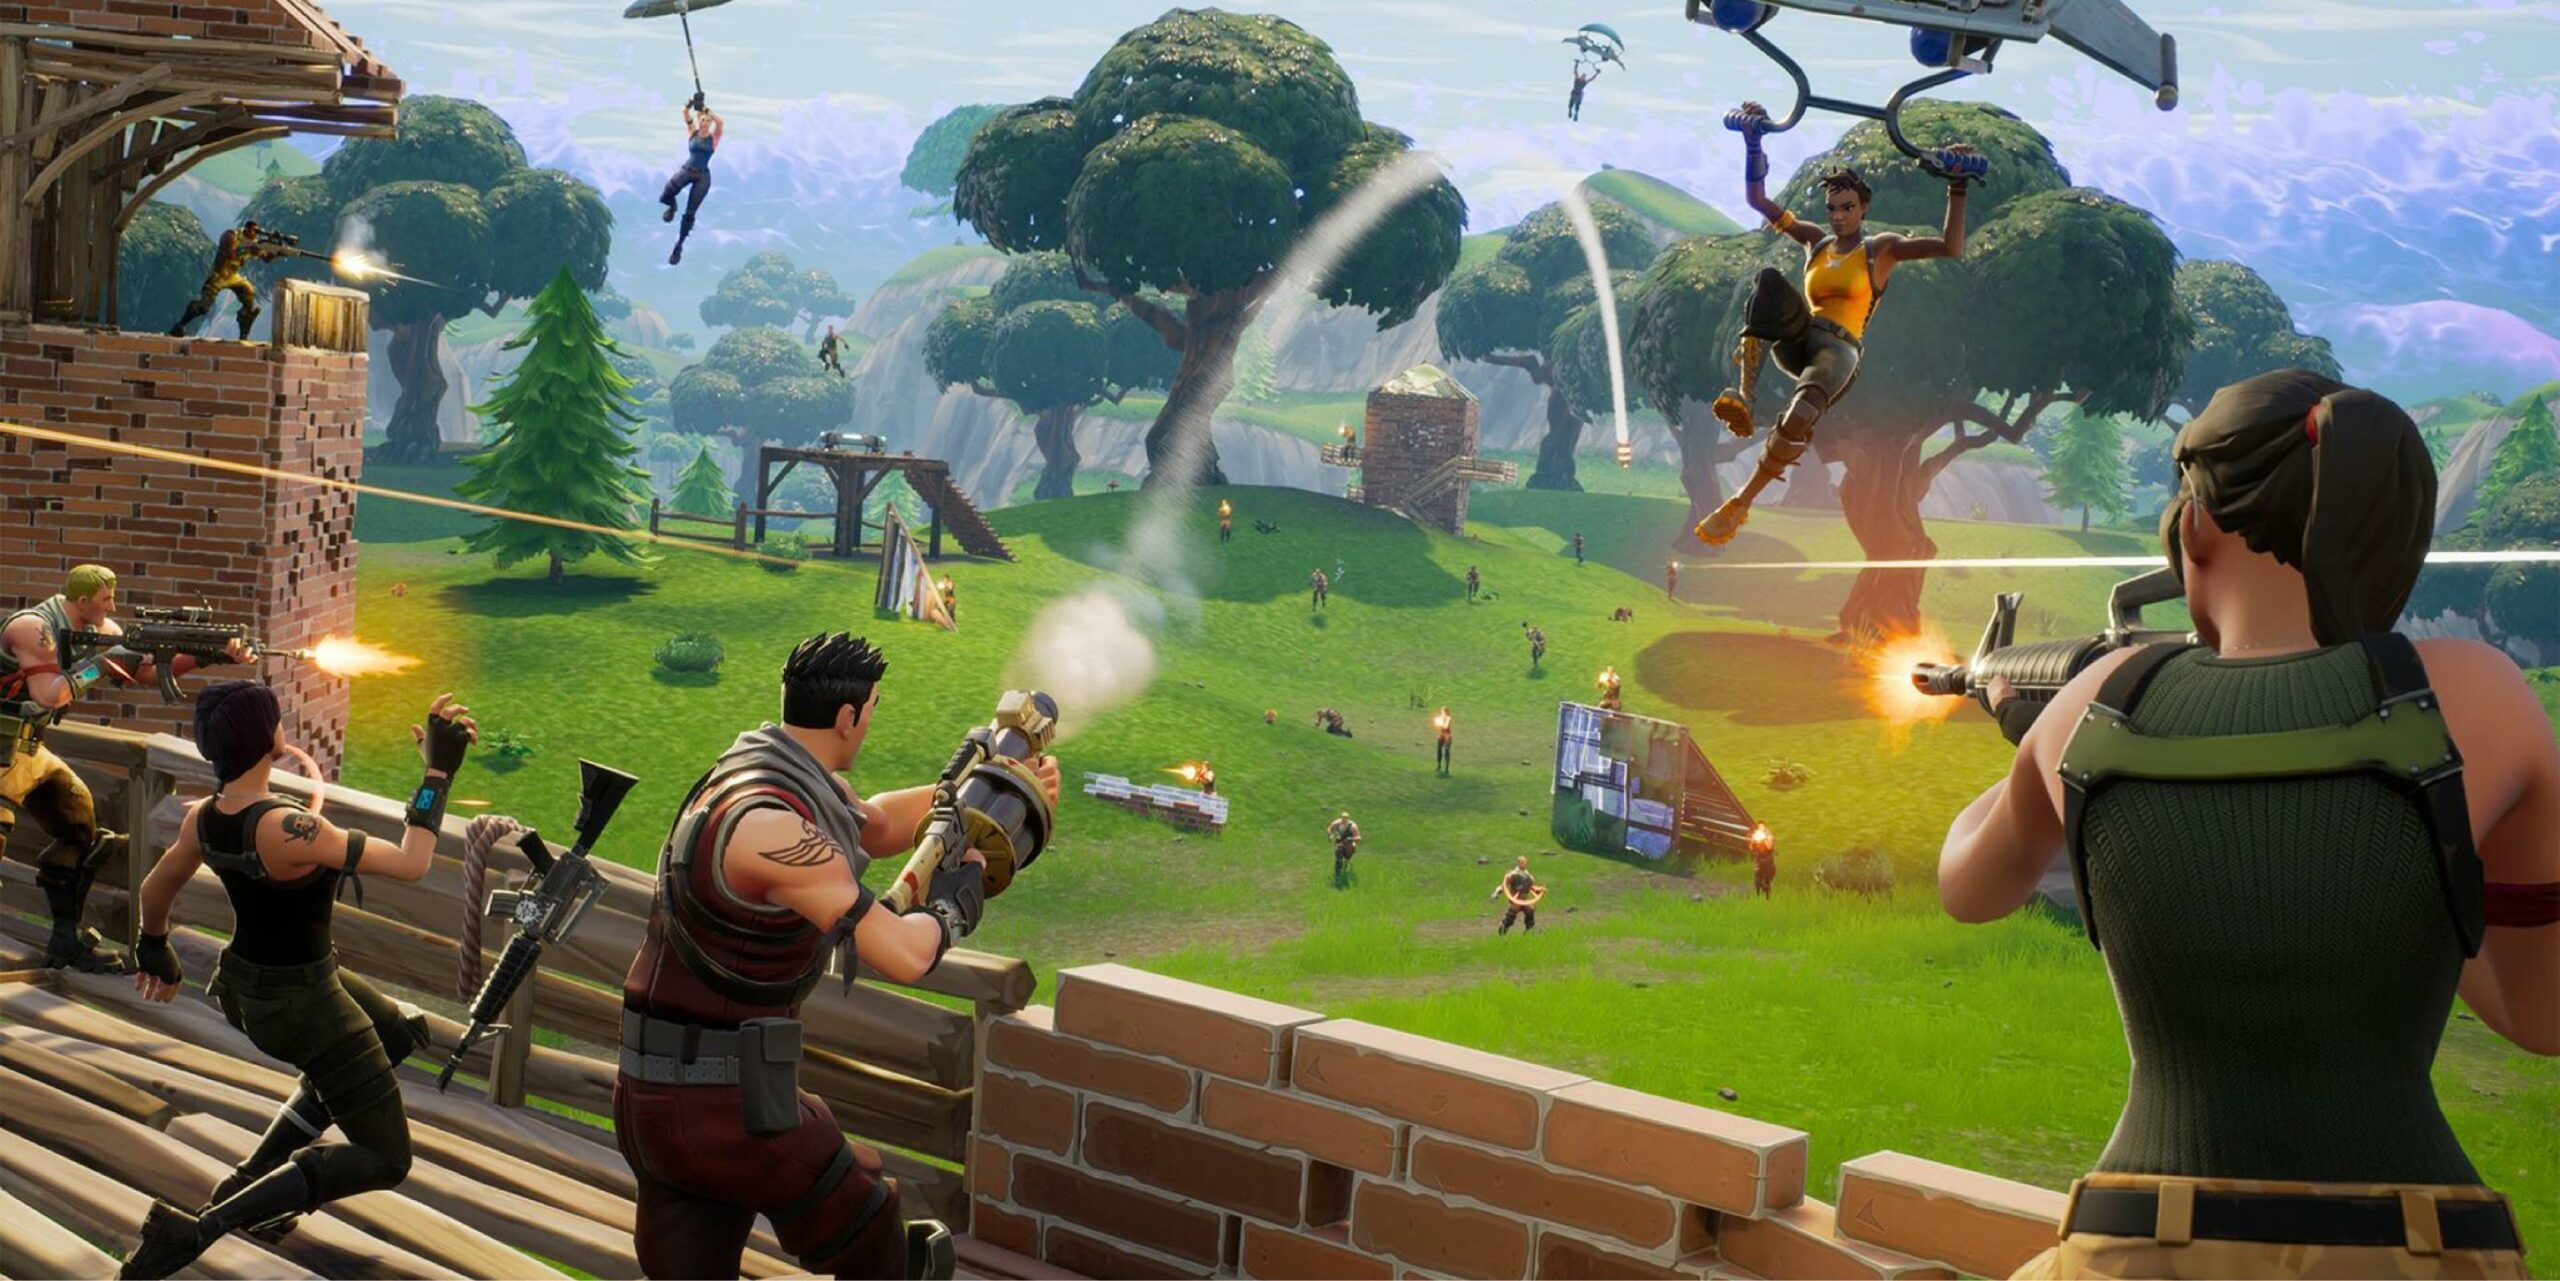 Come guardare e capire una partita di Fortnite